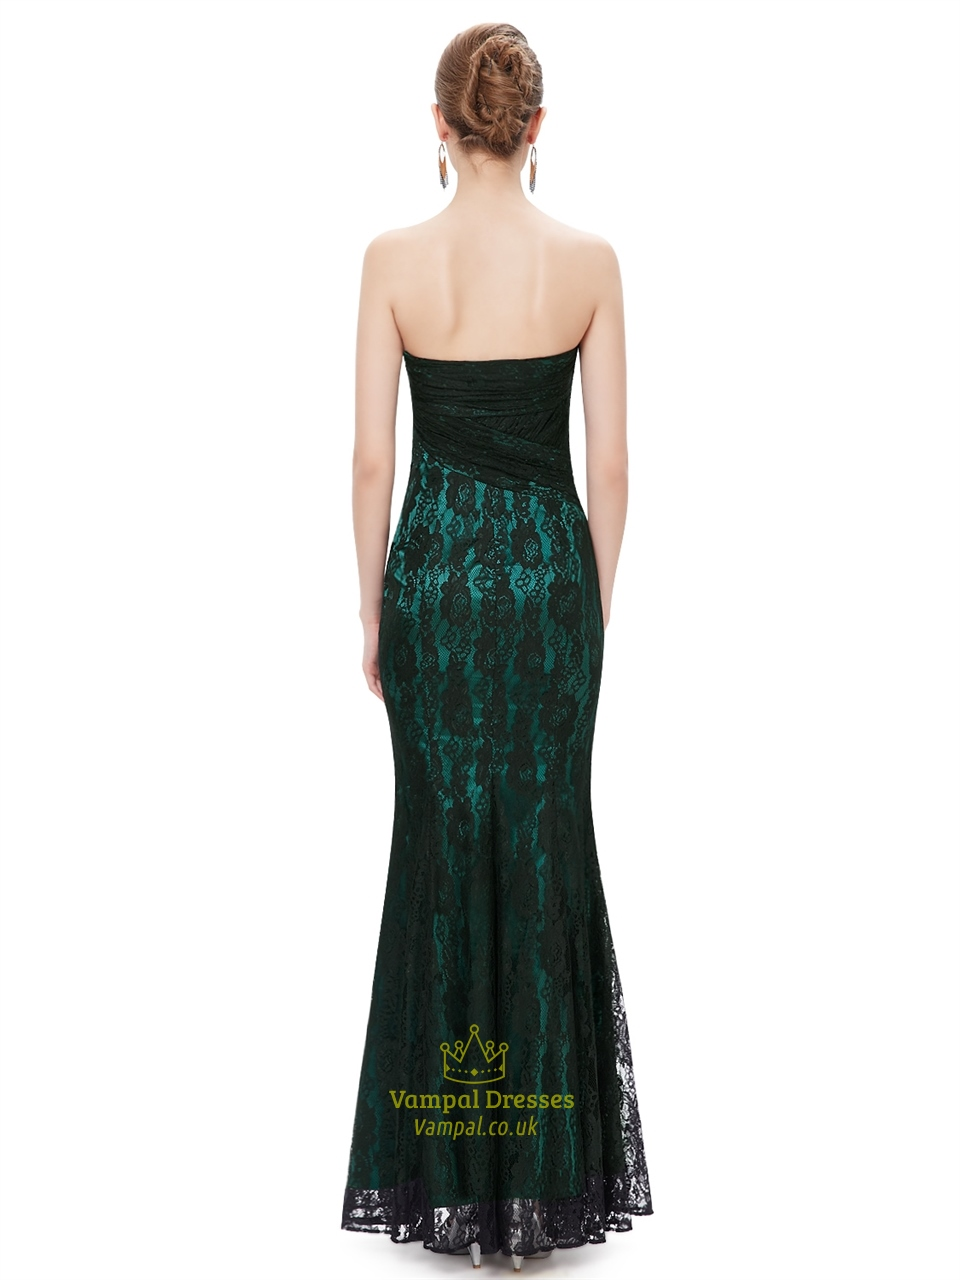 black and green strapless mermaid prom dresses with lace